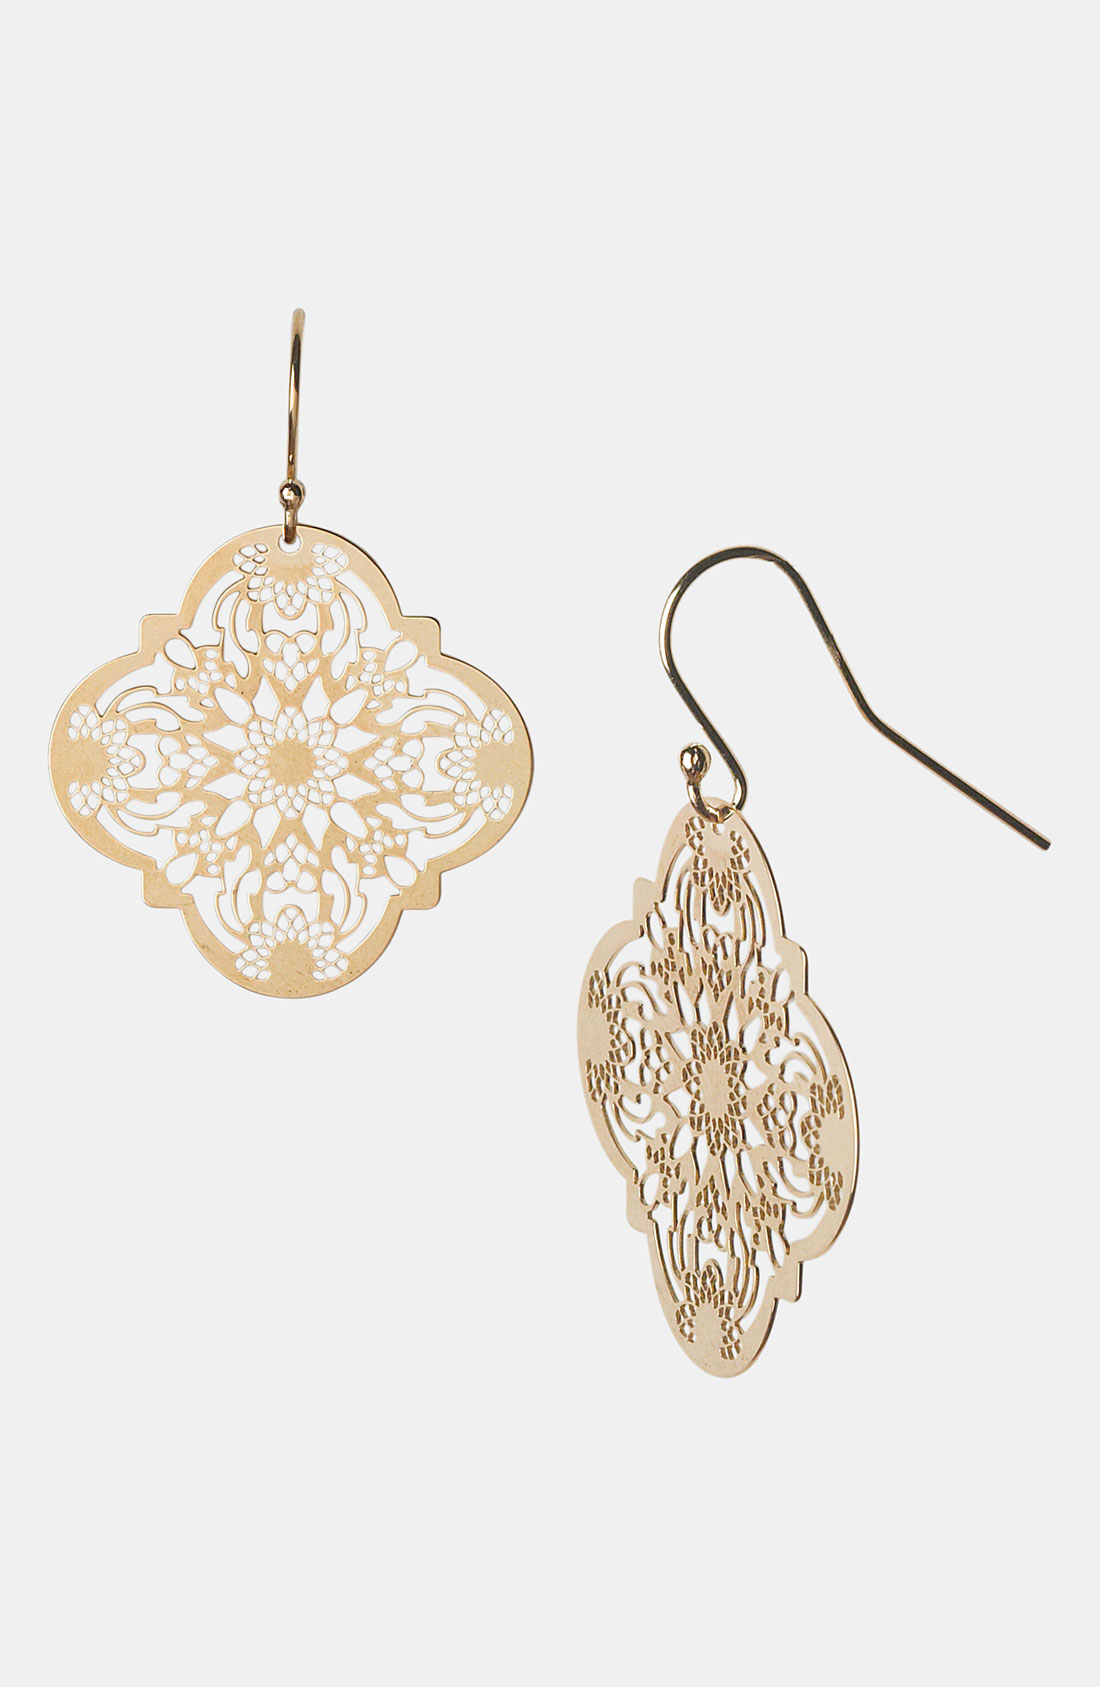 Argento Vivo 'Mini' Drop Earrings in Gold